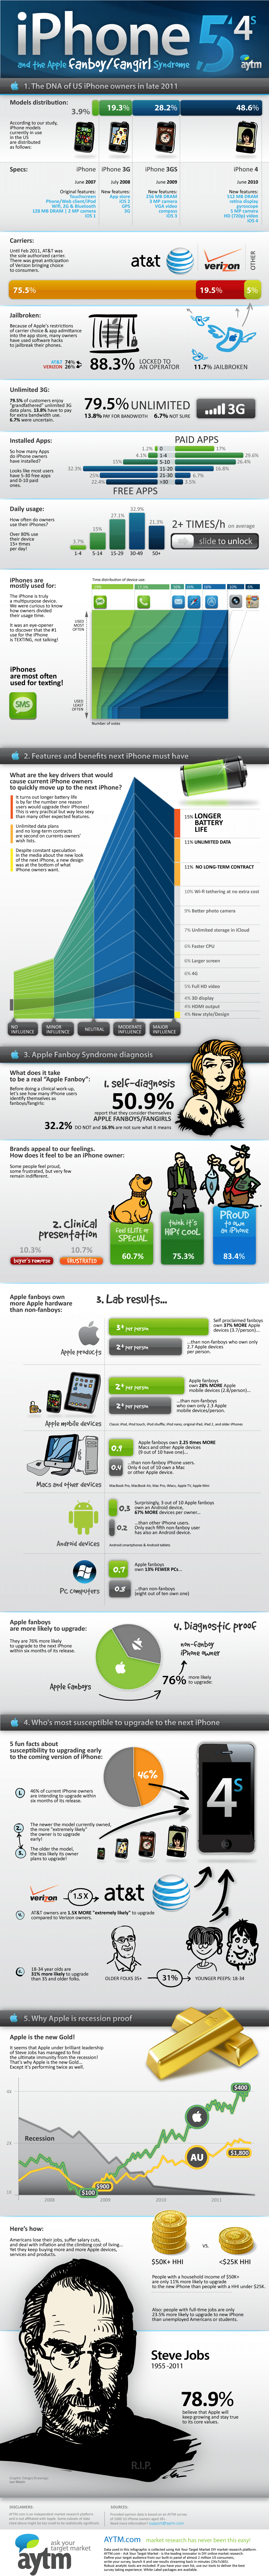 iPhone Fanboy Low Down Infographic